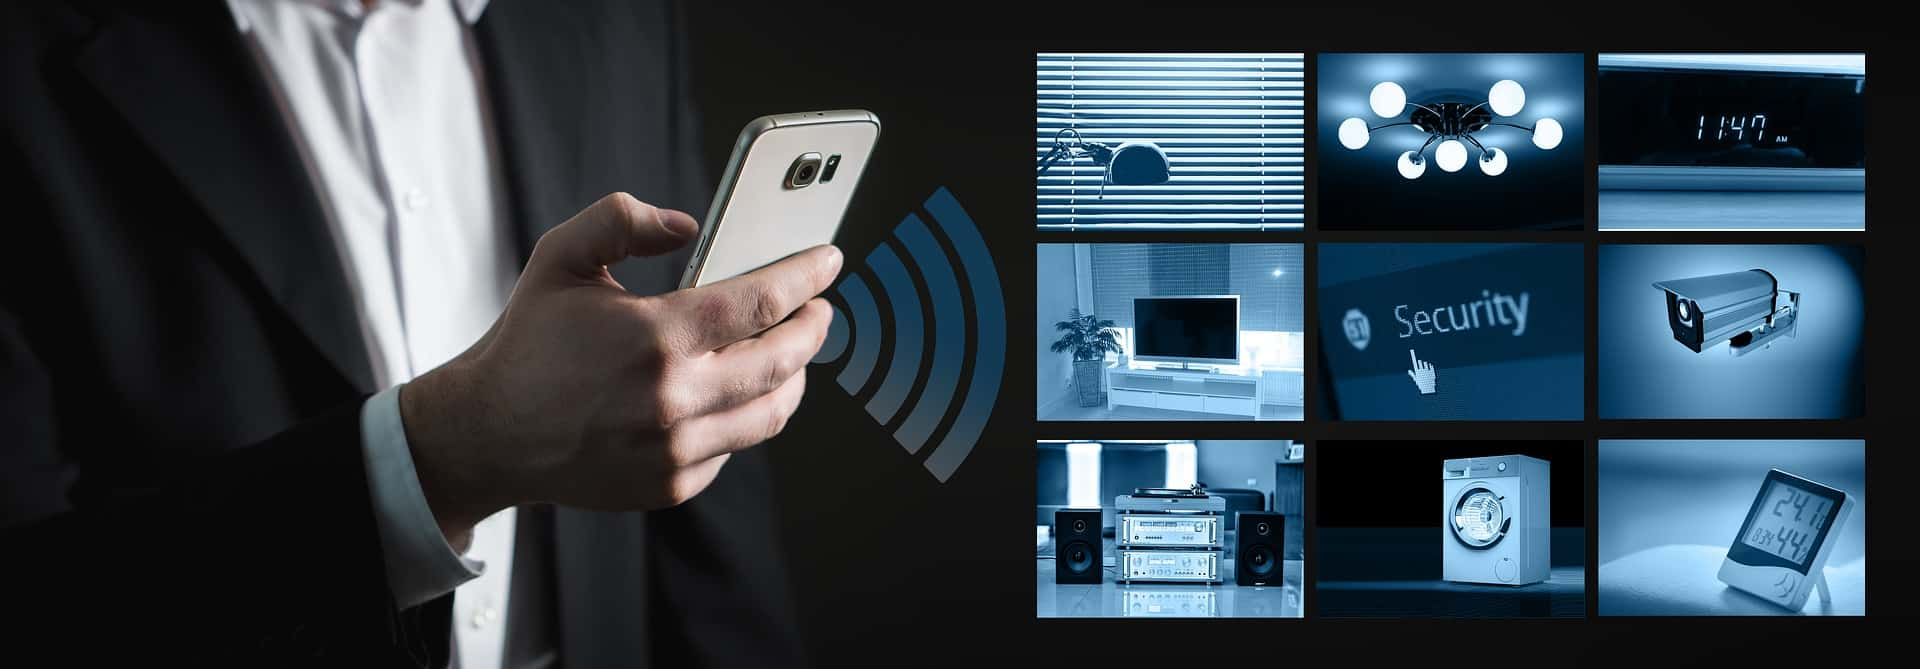 Smart Security Technology For Your Home